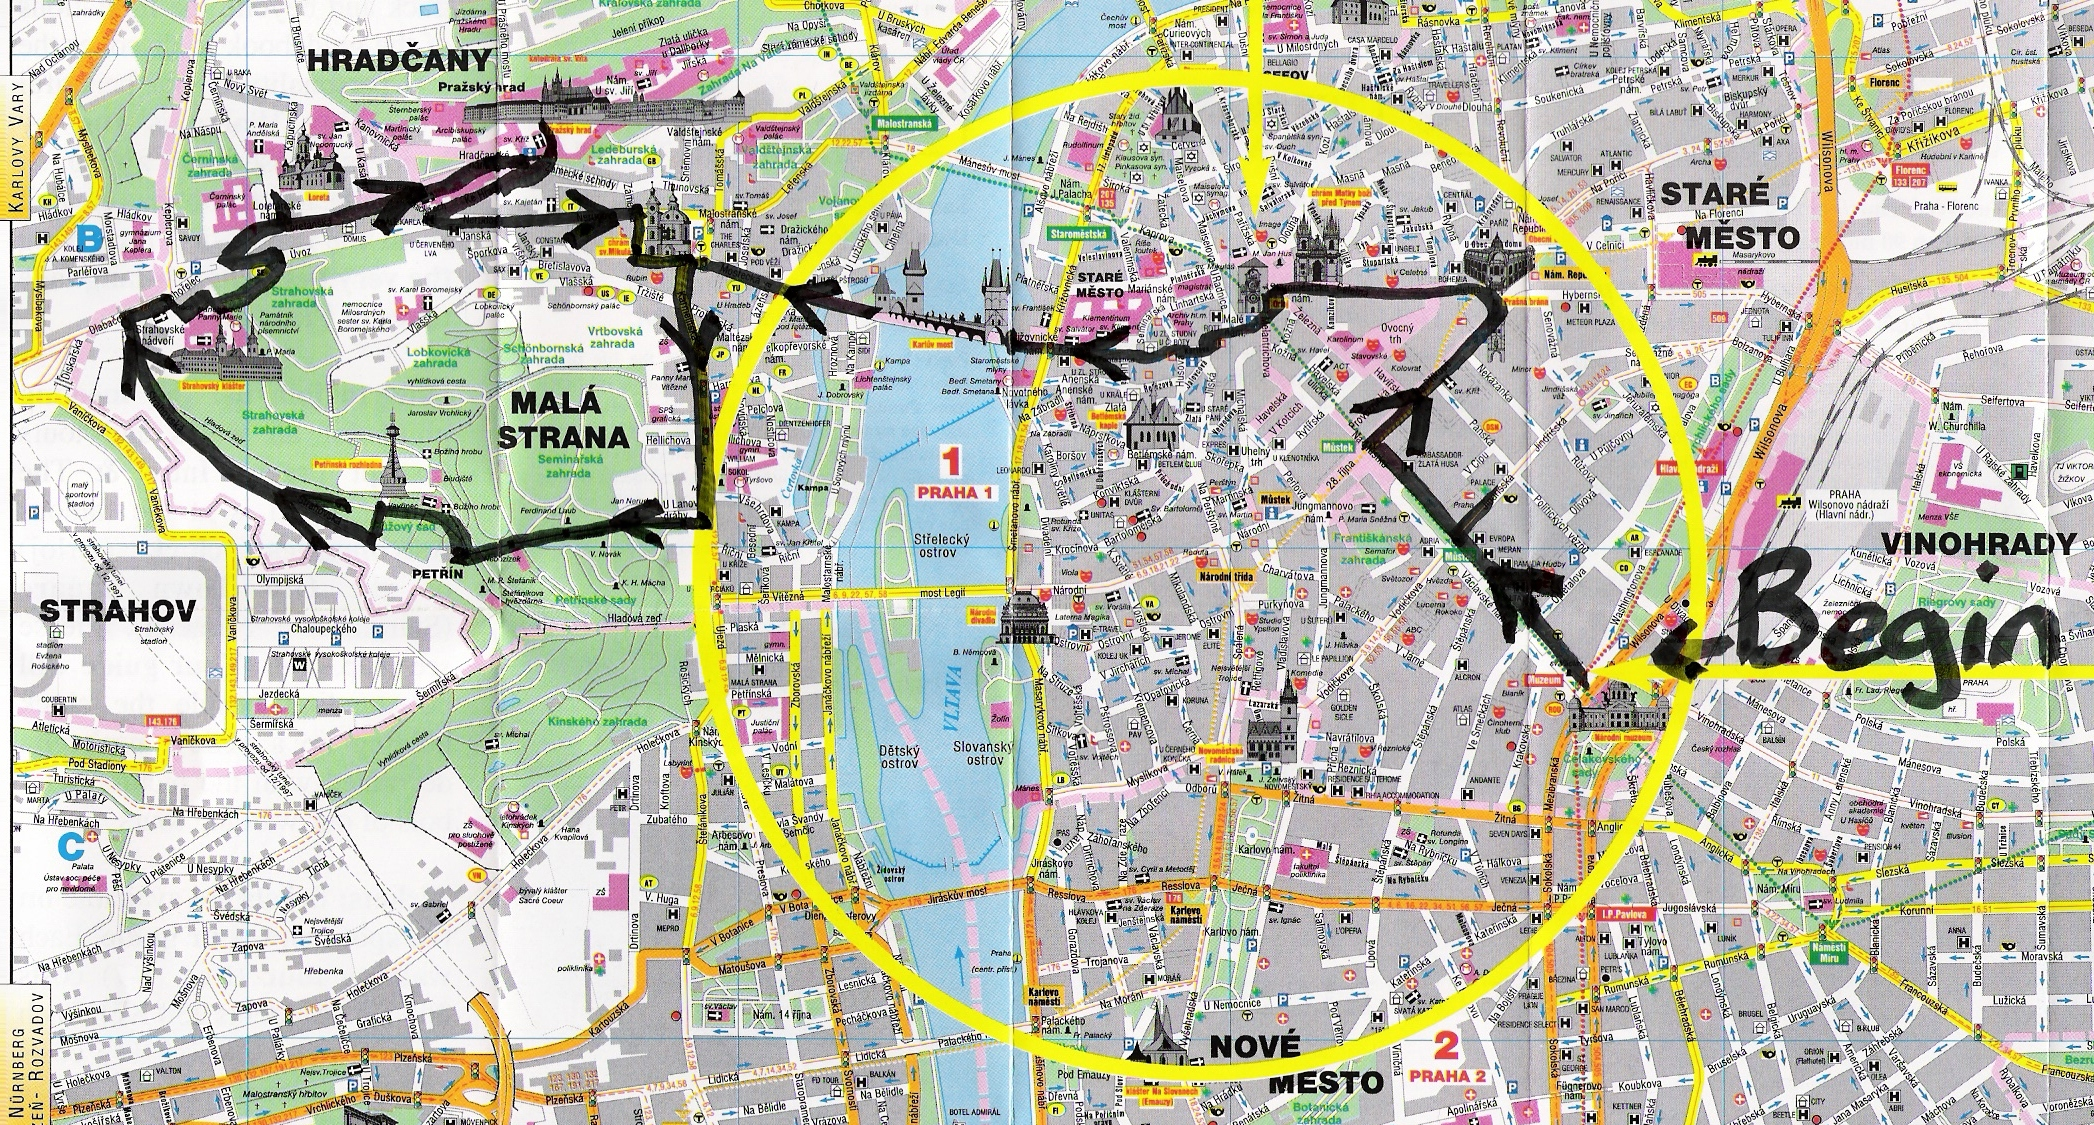 two days in prague - here is a map of the route for the first day